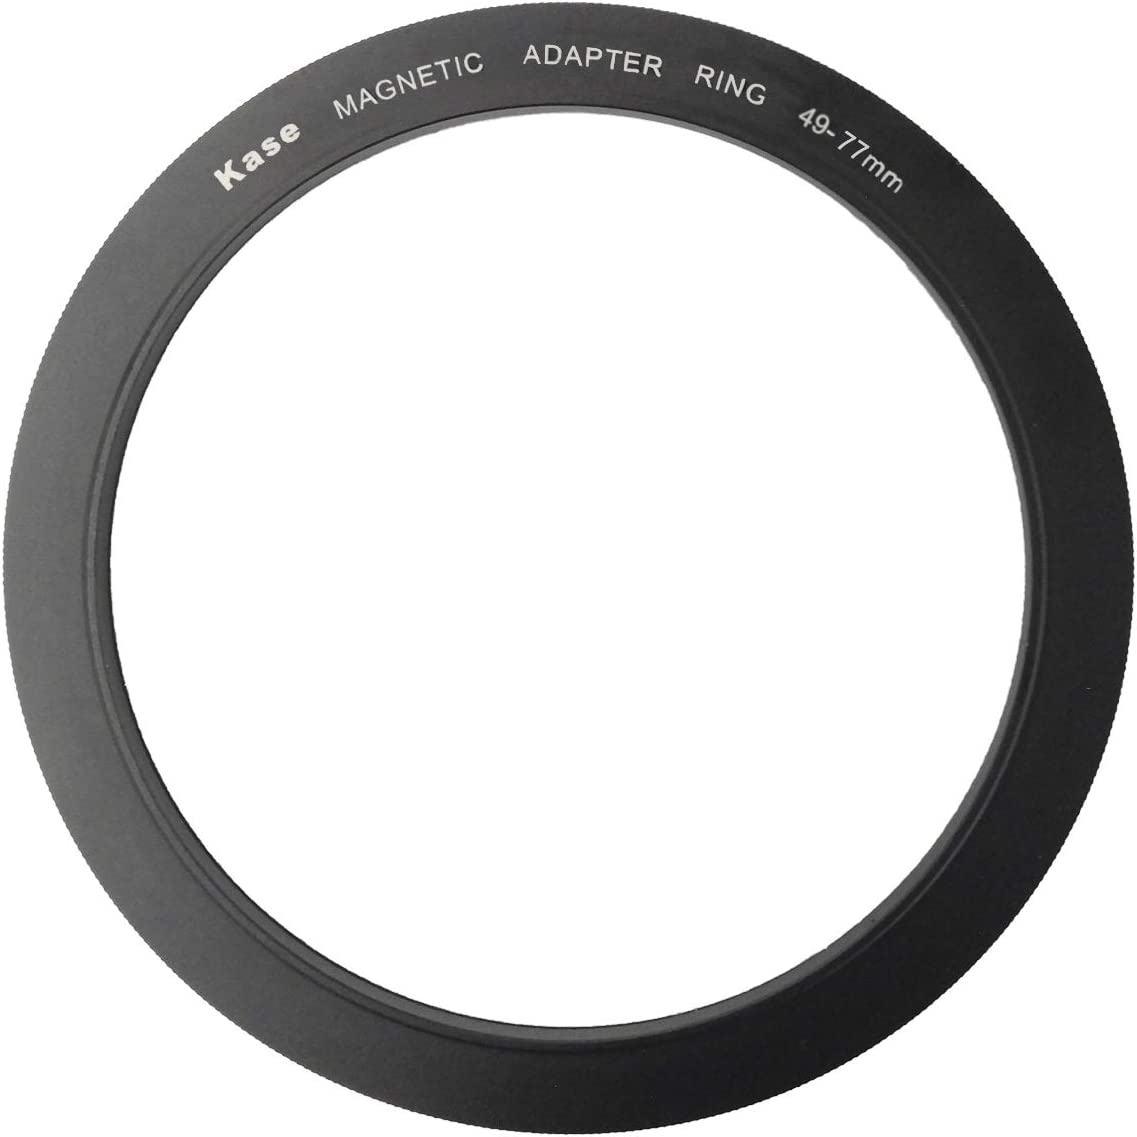 Kase Wolverine 49mm to 77mm Magnetic Step Up Filter Ring Adapter 49 77